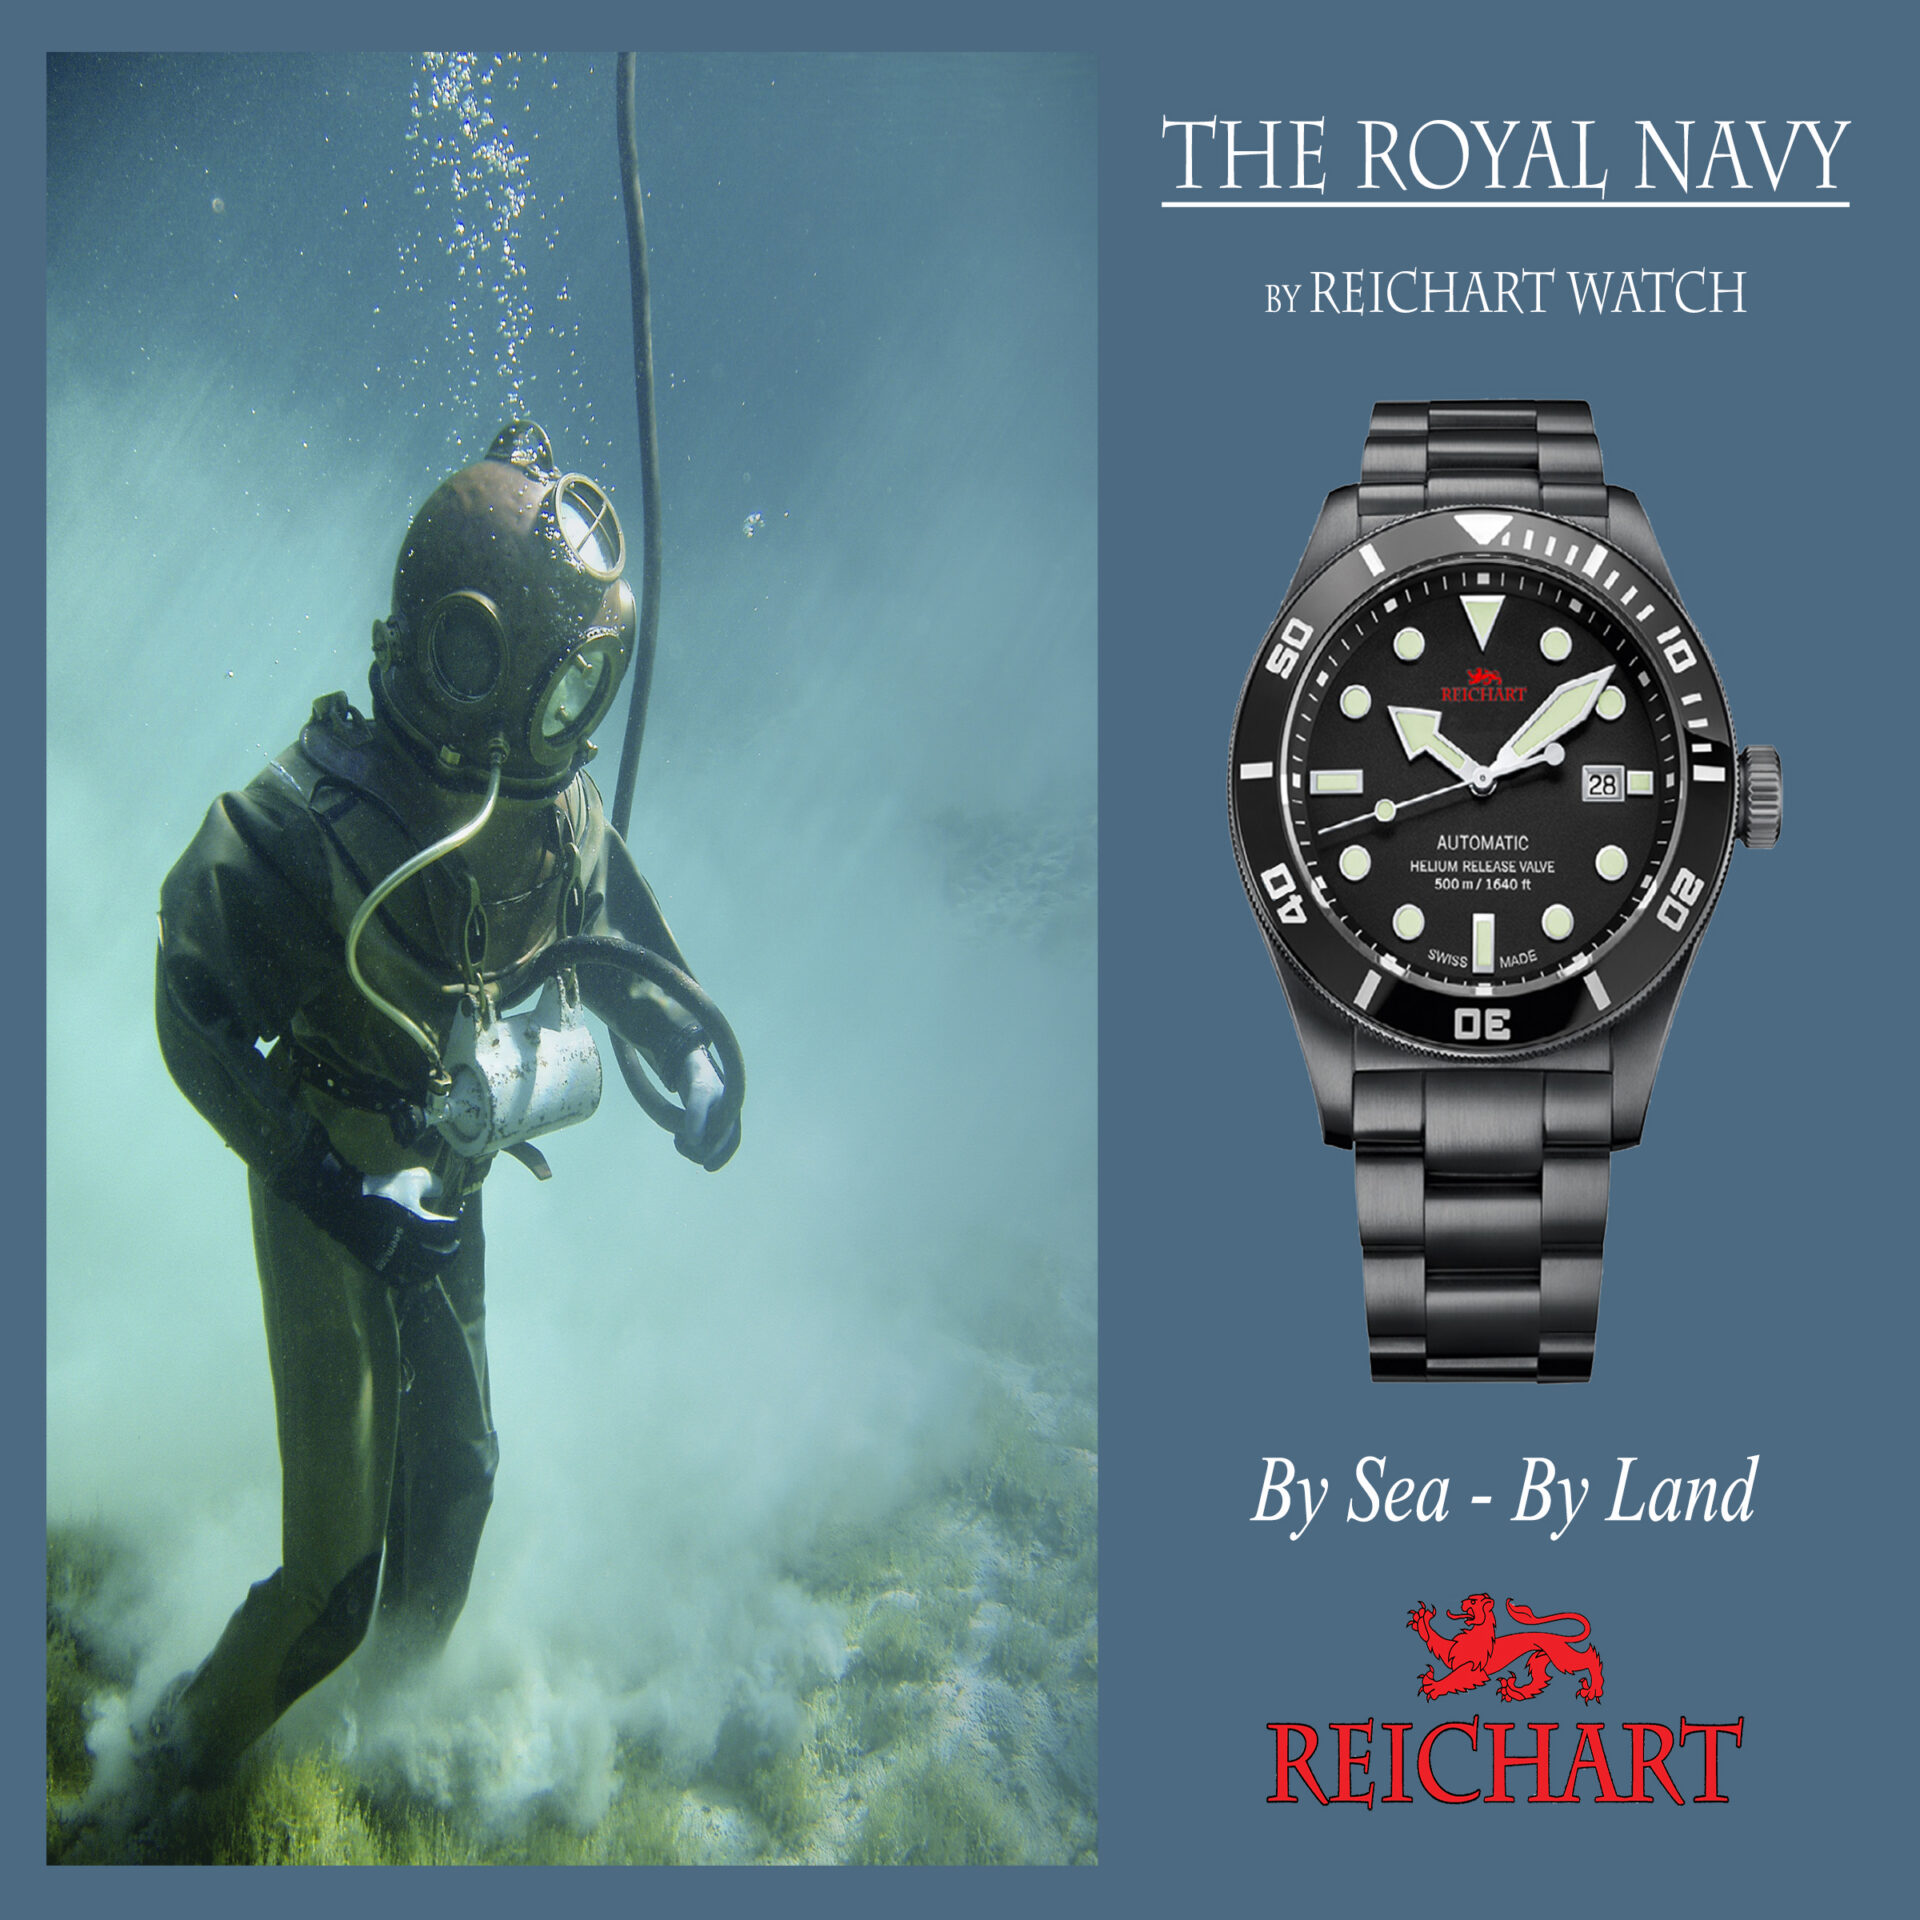 The Royal Navy by Reichart Watch